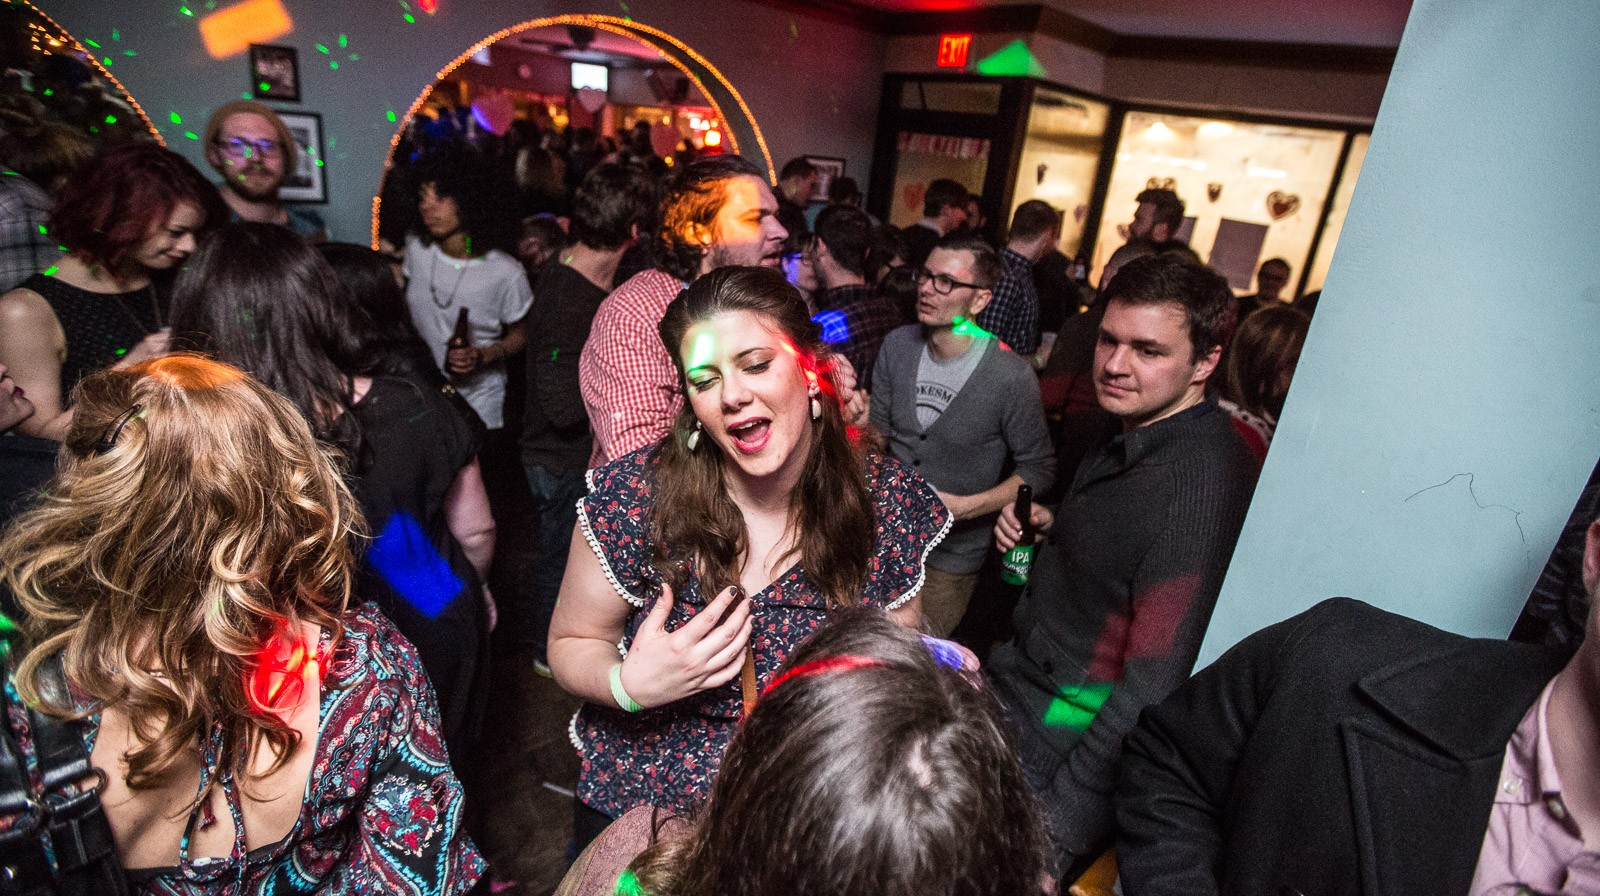 Sugar City Soul Night at Milkie's is a terrific place to dance. (Chuck Alaimo/Special to The News)